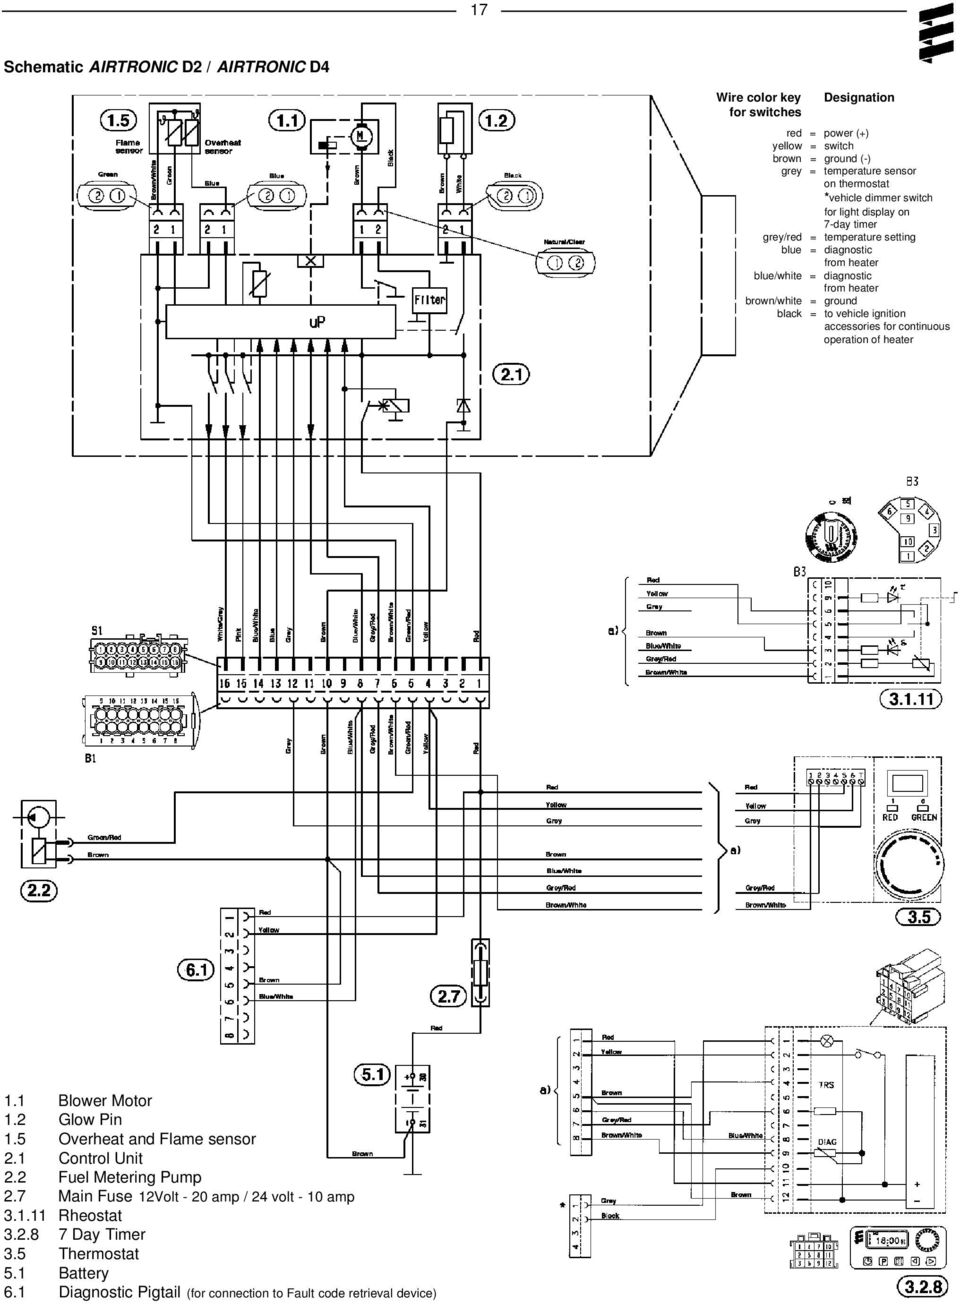 ND_9626] Airtronic D2 Wiring Diagram Schematic Wiring